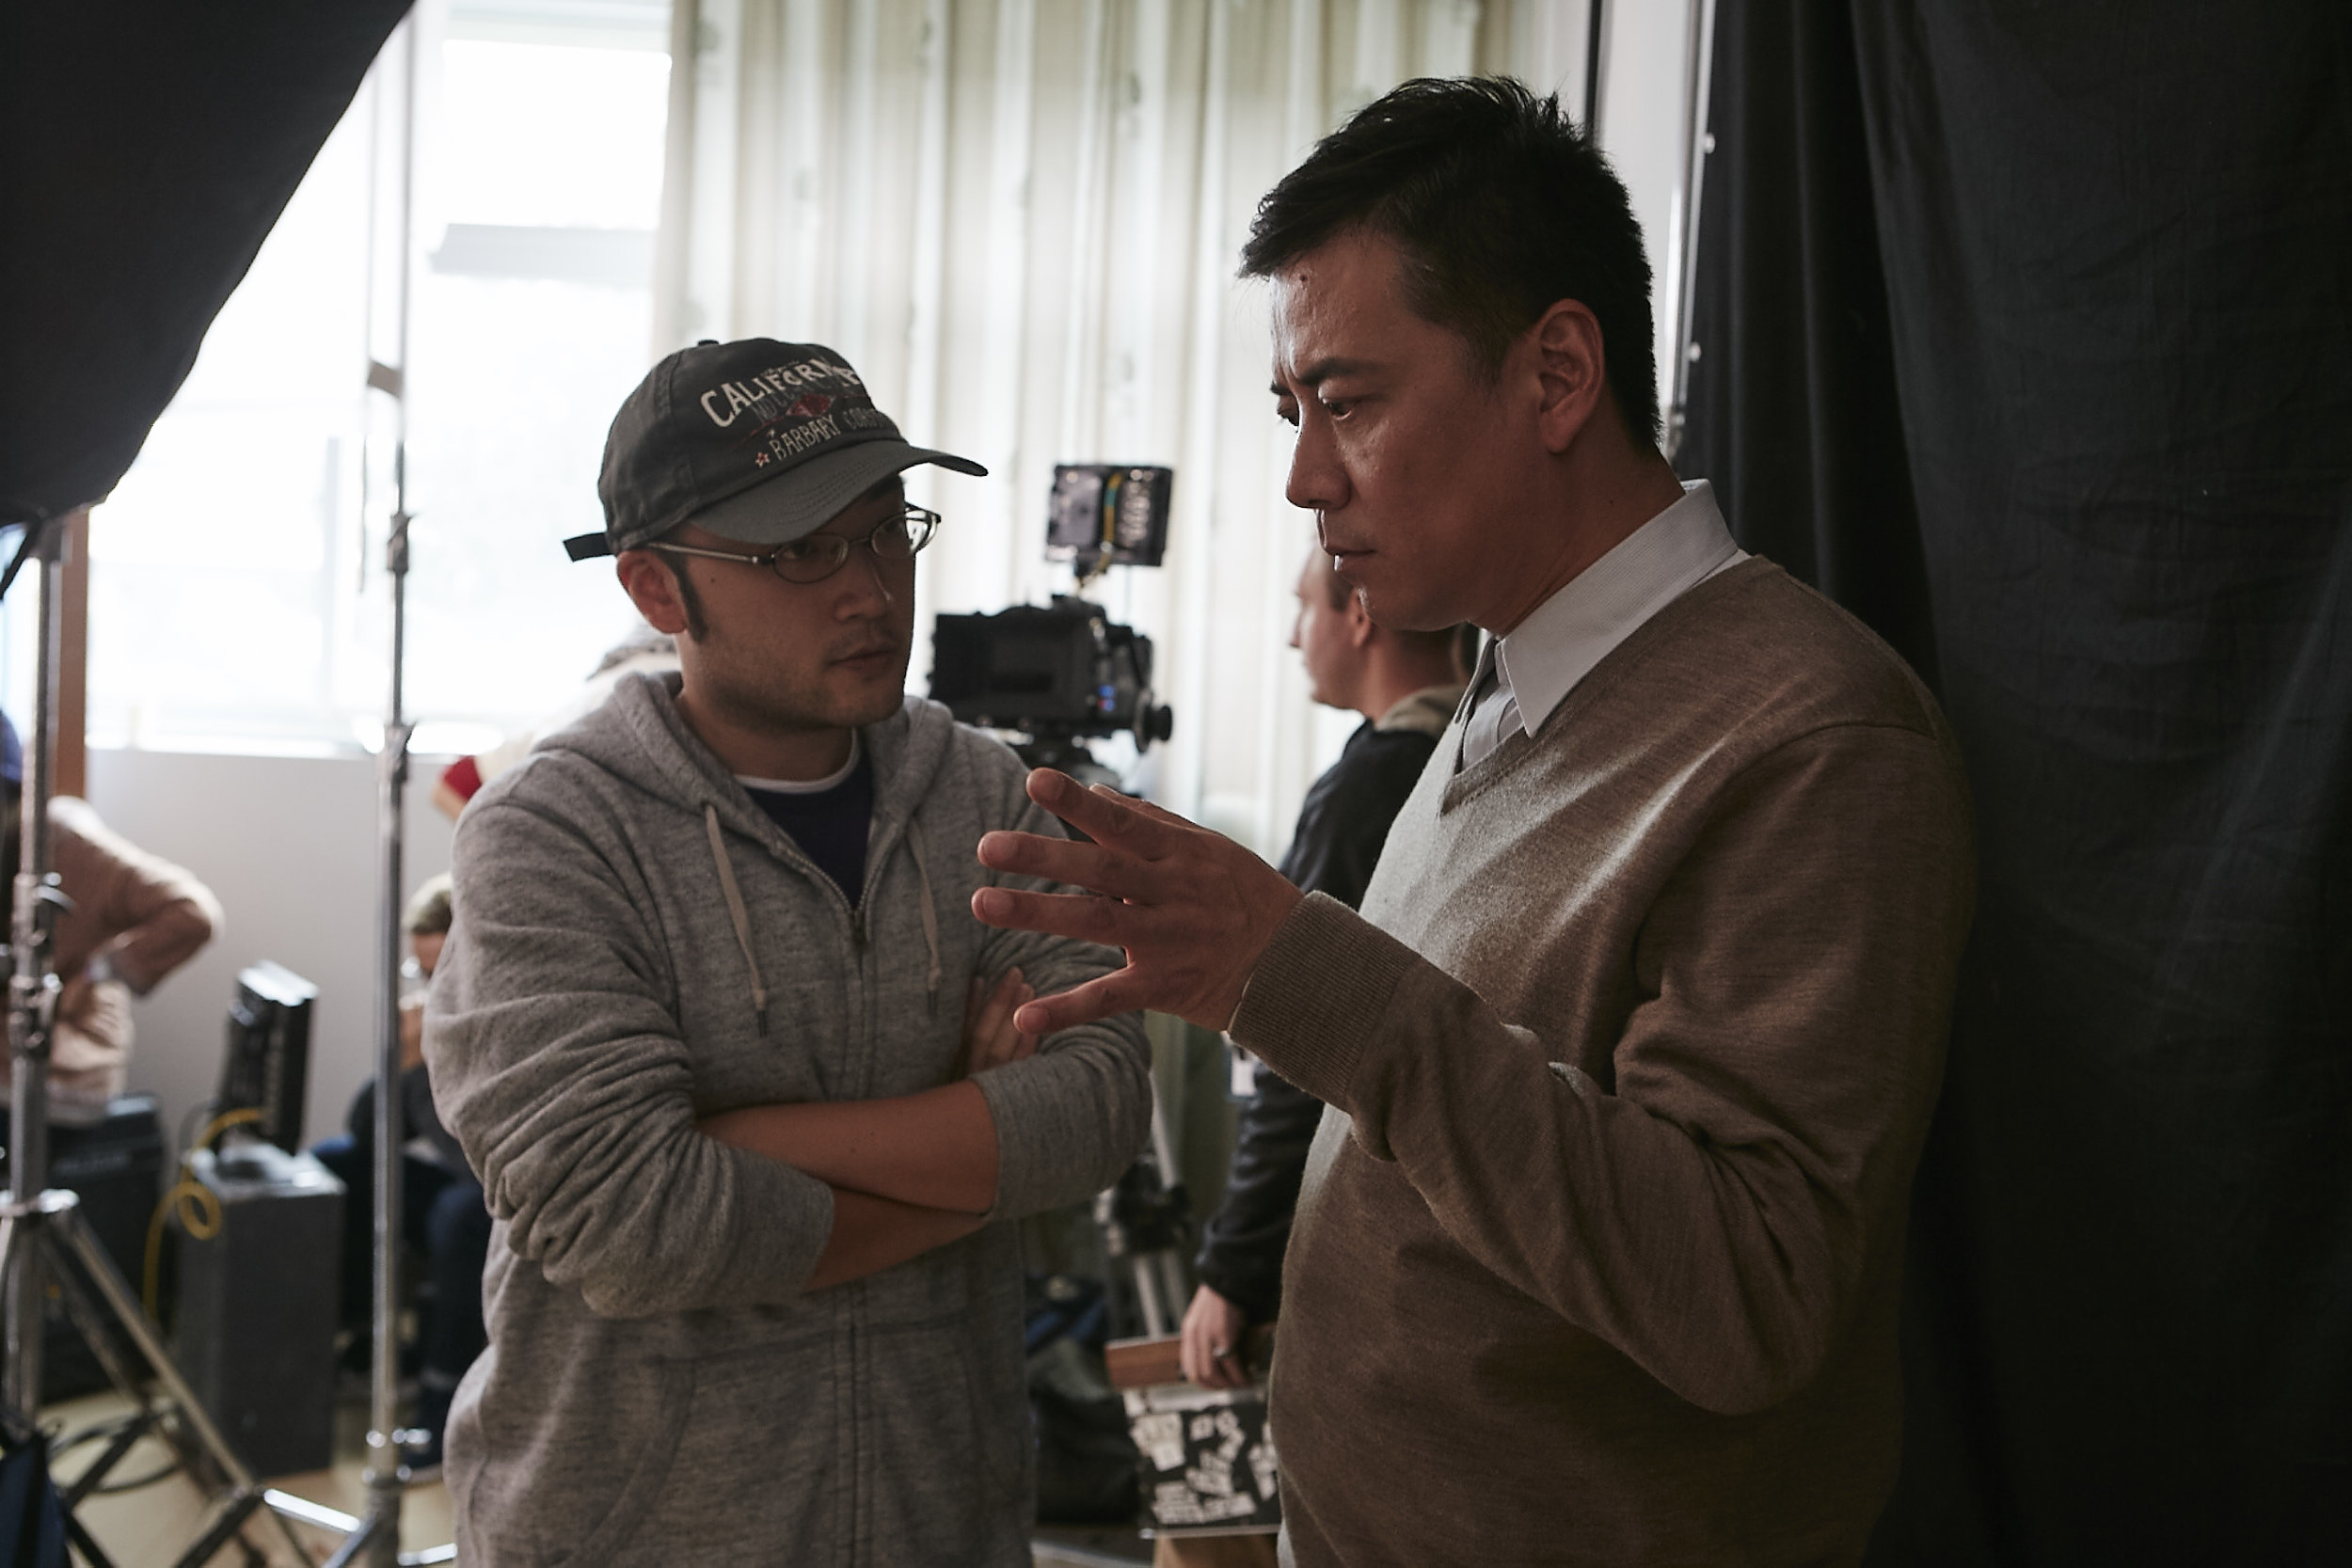 Director Jianjie Lin (Left) discussing a scene with actor Shengsheng Zhao